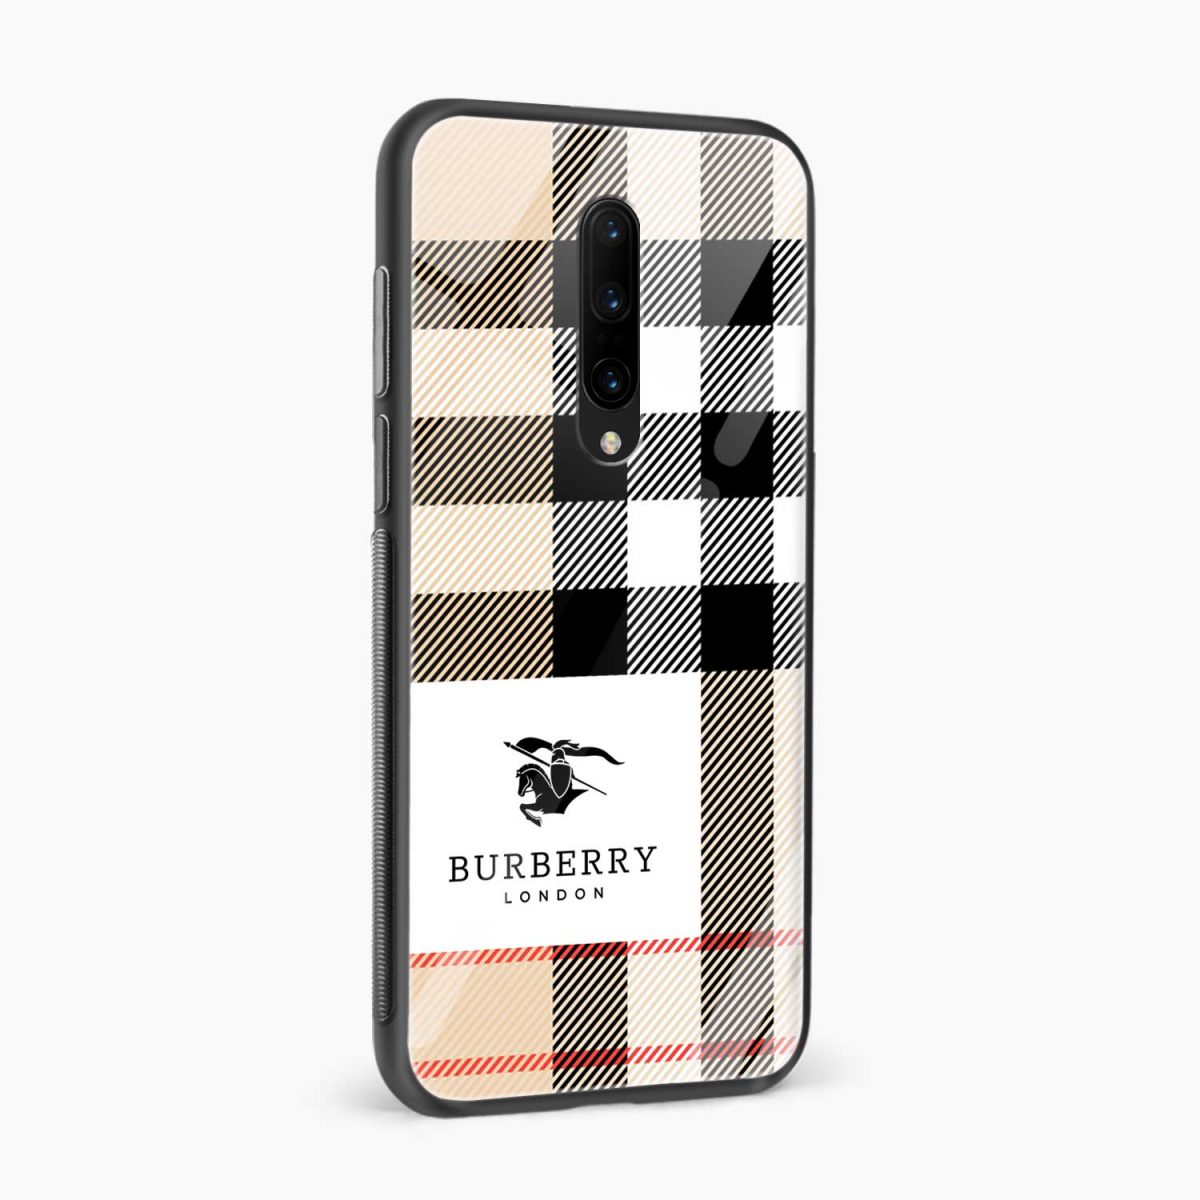 burberry cross lines pattern side view oneplus 7 pro back cover